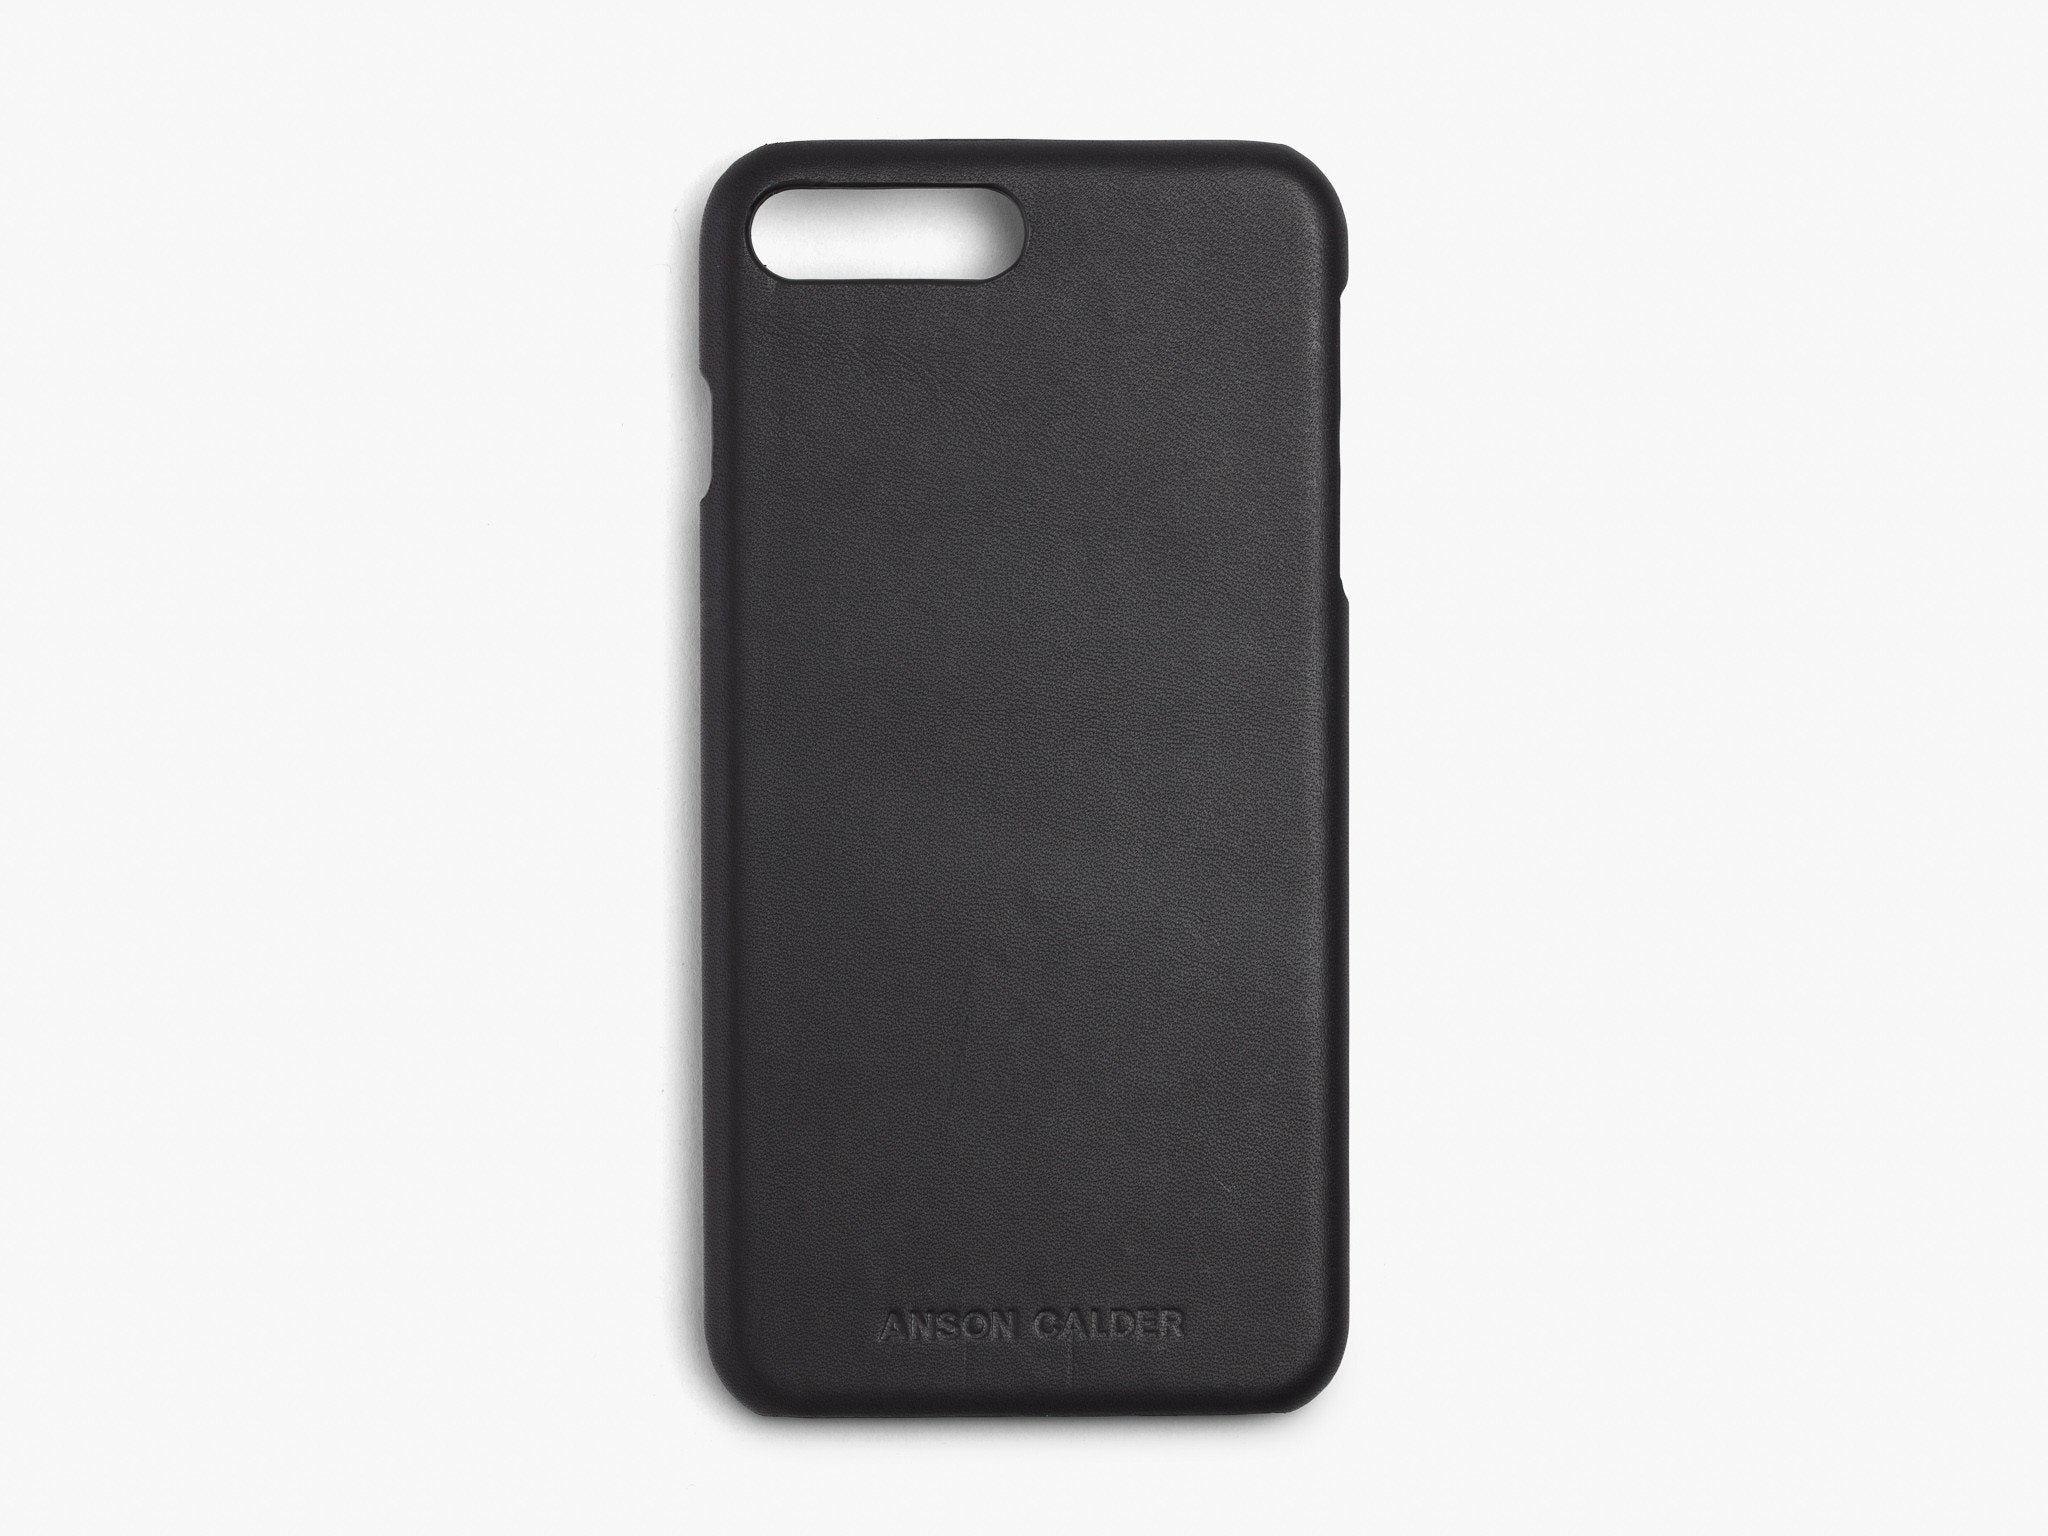 CALFSKIN iPHONE CASE CASES ANSON CALDER iPhone 8 Plus _Black